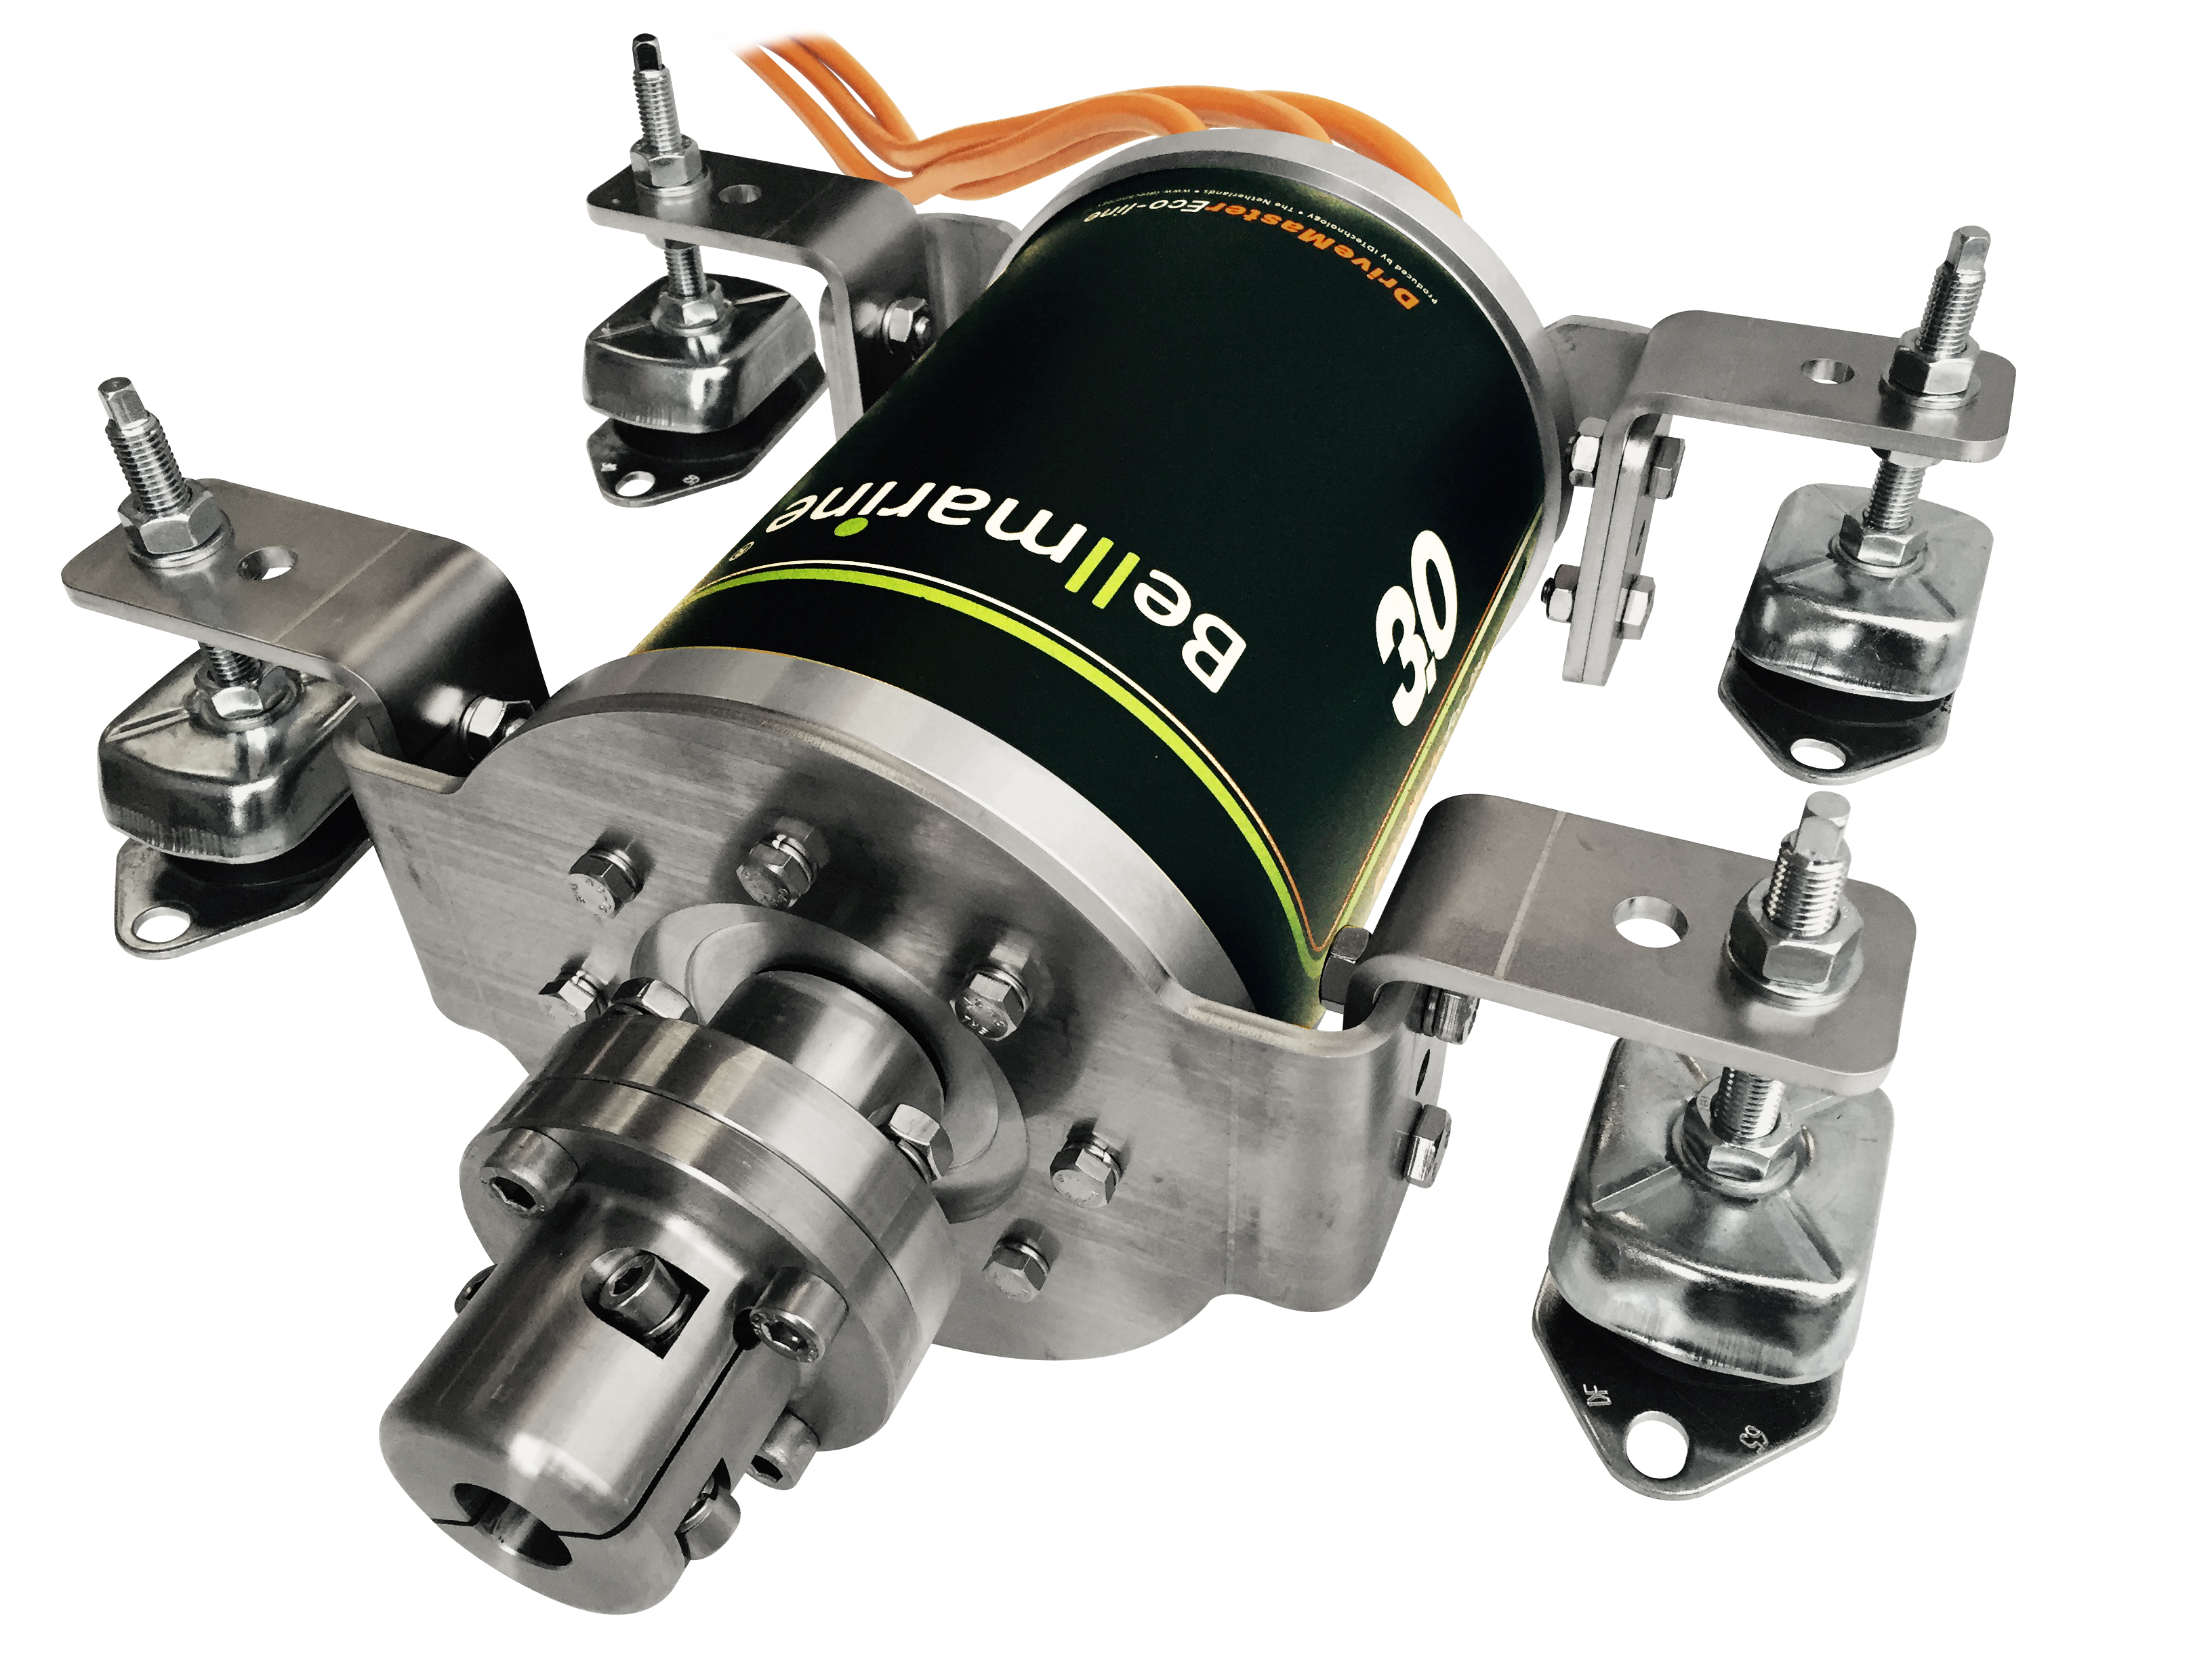 Bellmarine drivemaster eco line electric inboard eco for Air cooled outboard motor kits